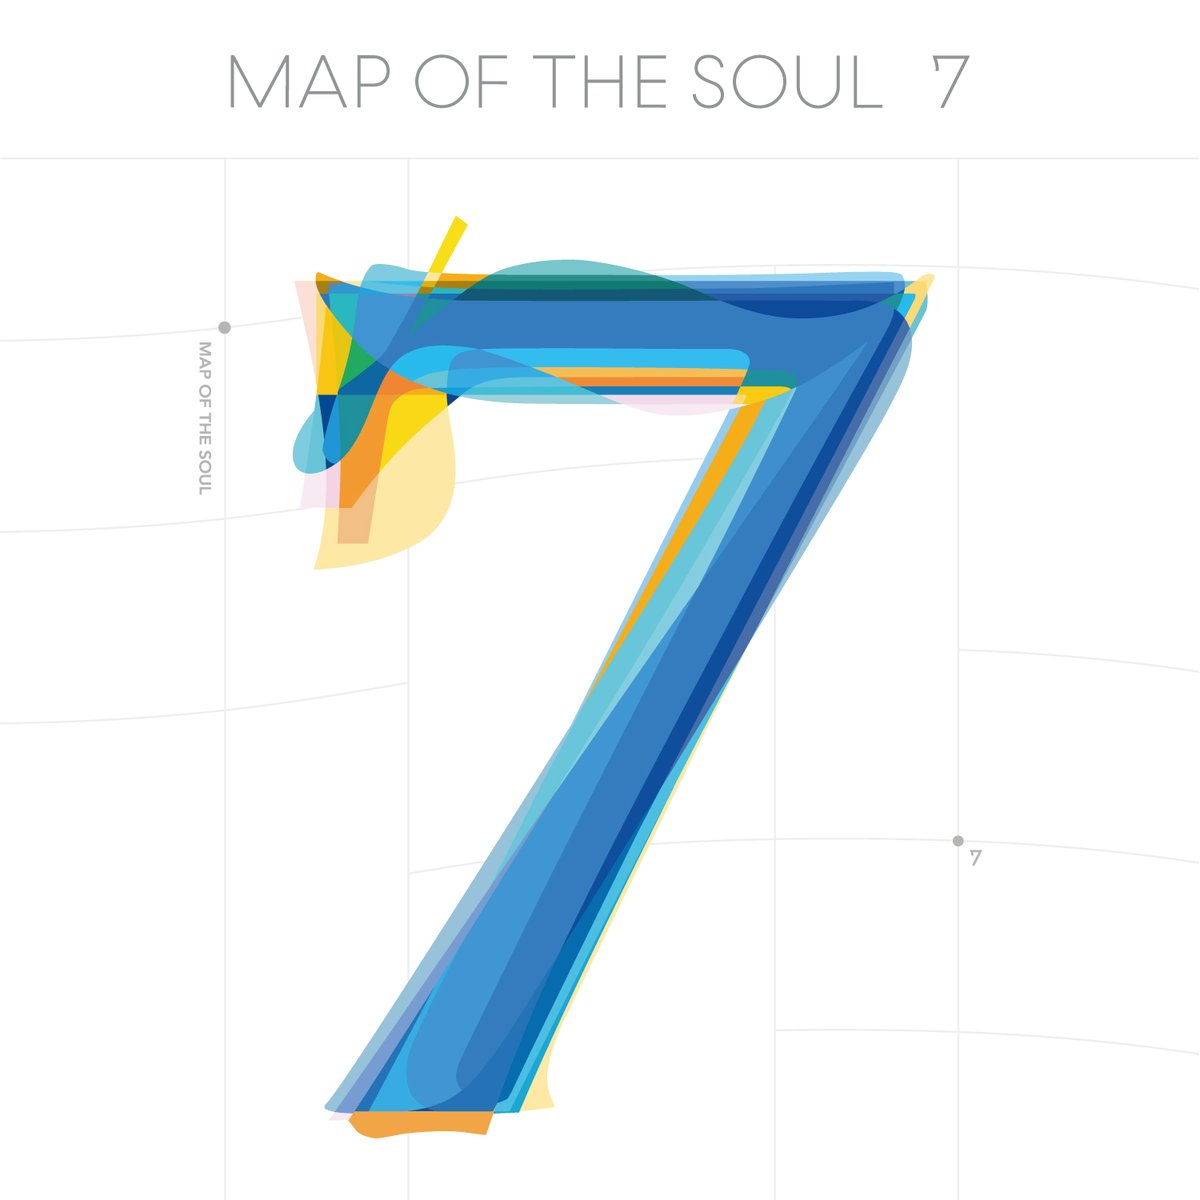 Happy #BTS #MAP_OF_THE_SOUL_7 day to everyone. ✨✨✨✨✨✨✨✨✨ BRB listening to the album over and over all day. 💜 (@BTS_twt @bts_bighit #BTSComeback2020)